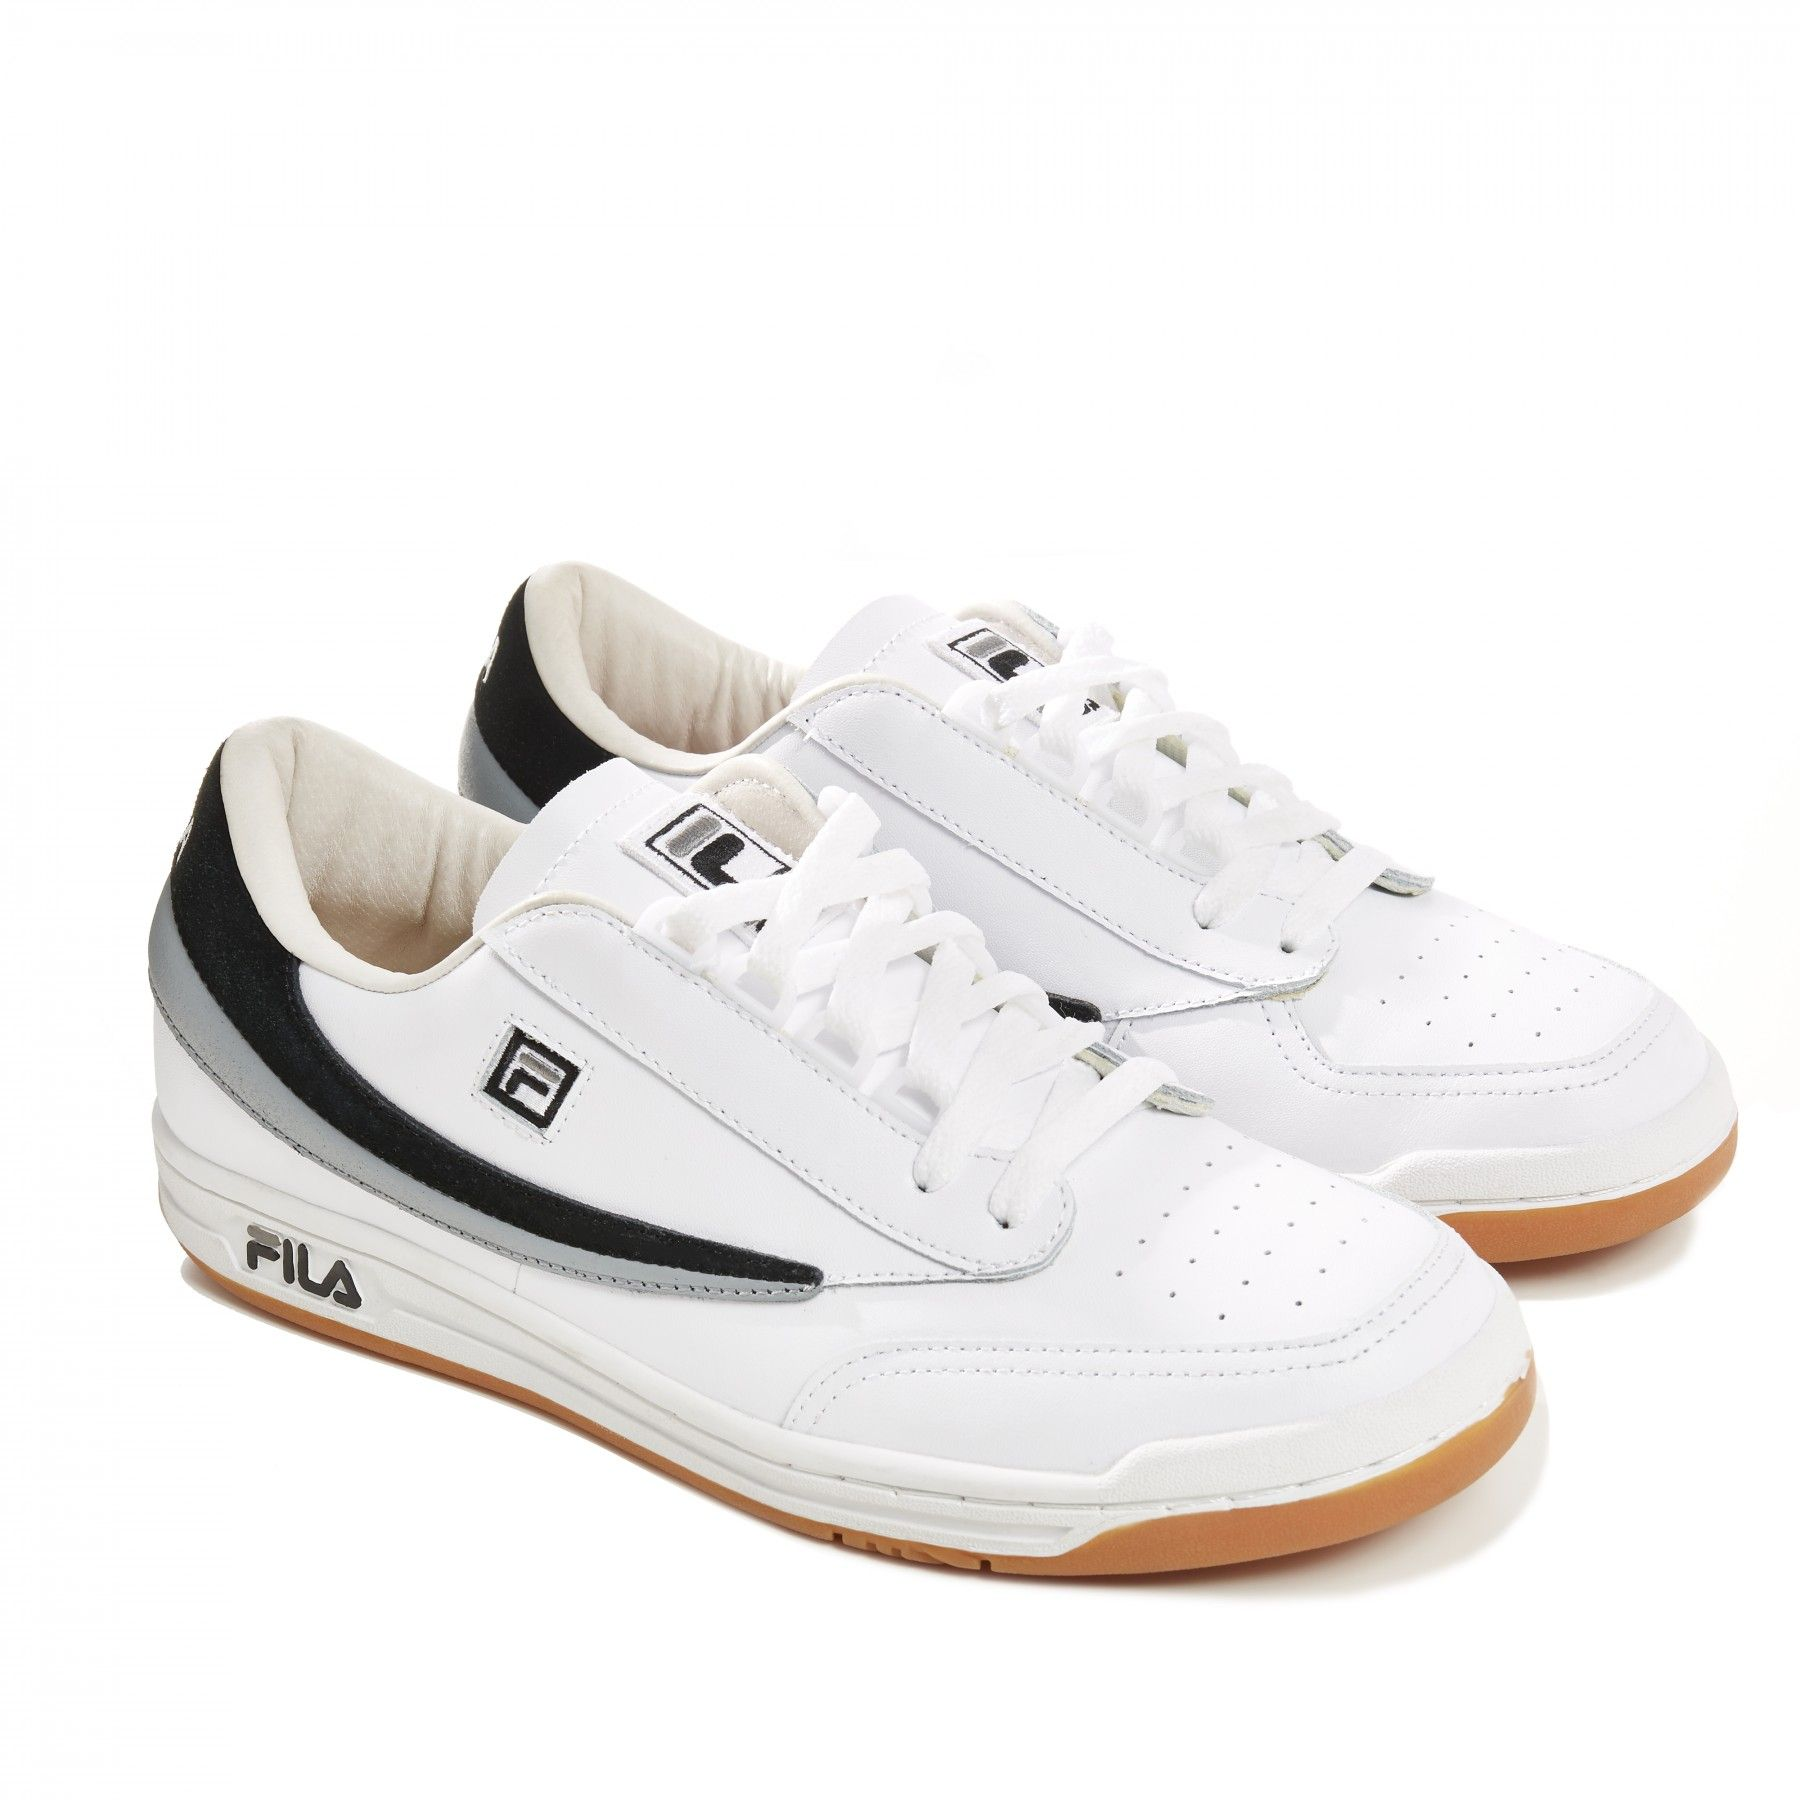 fila shoes trends superstar virgo itinerary